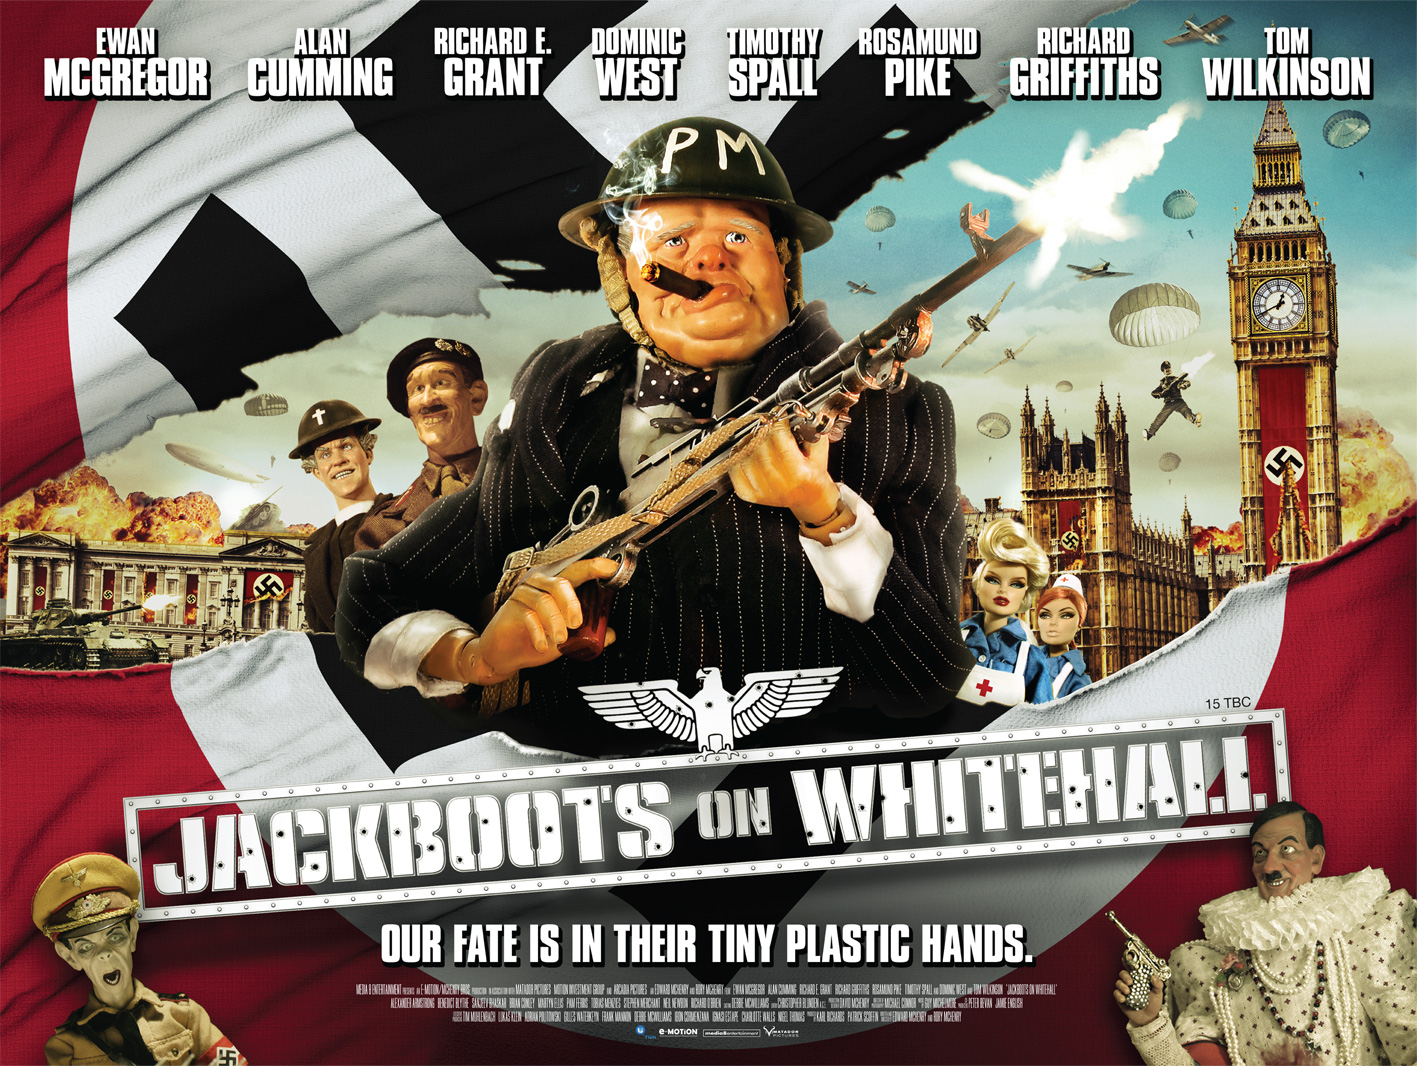 DVD Review: Jackboots on Whitehall